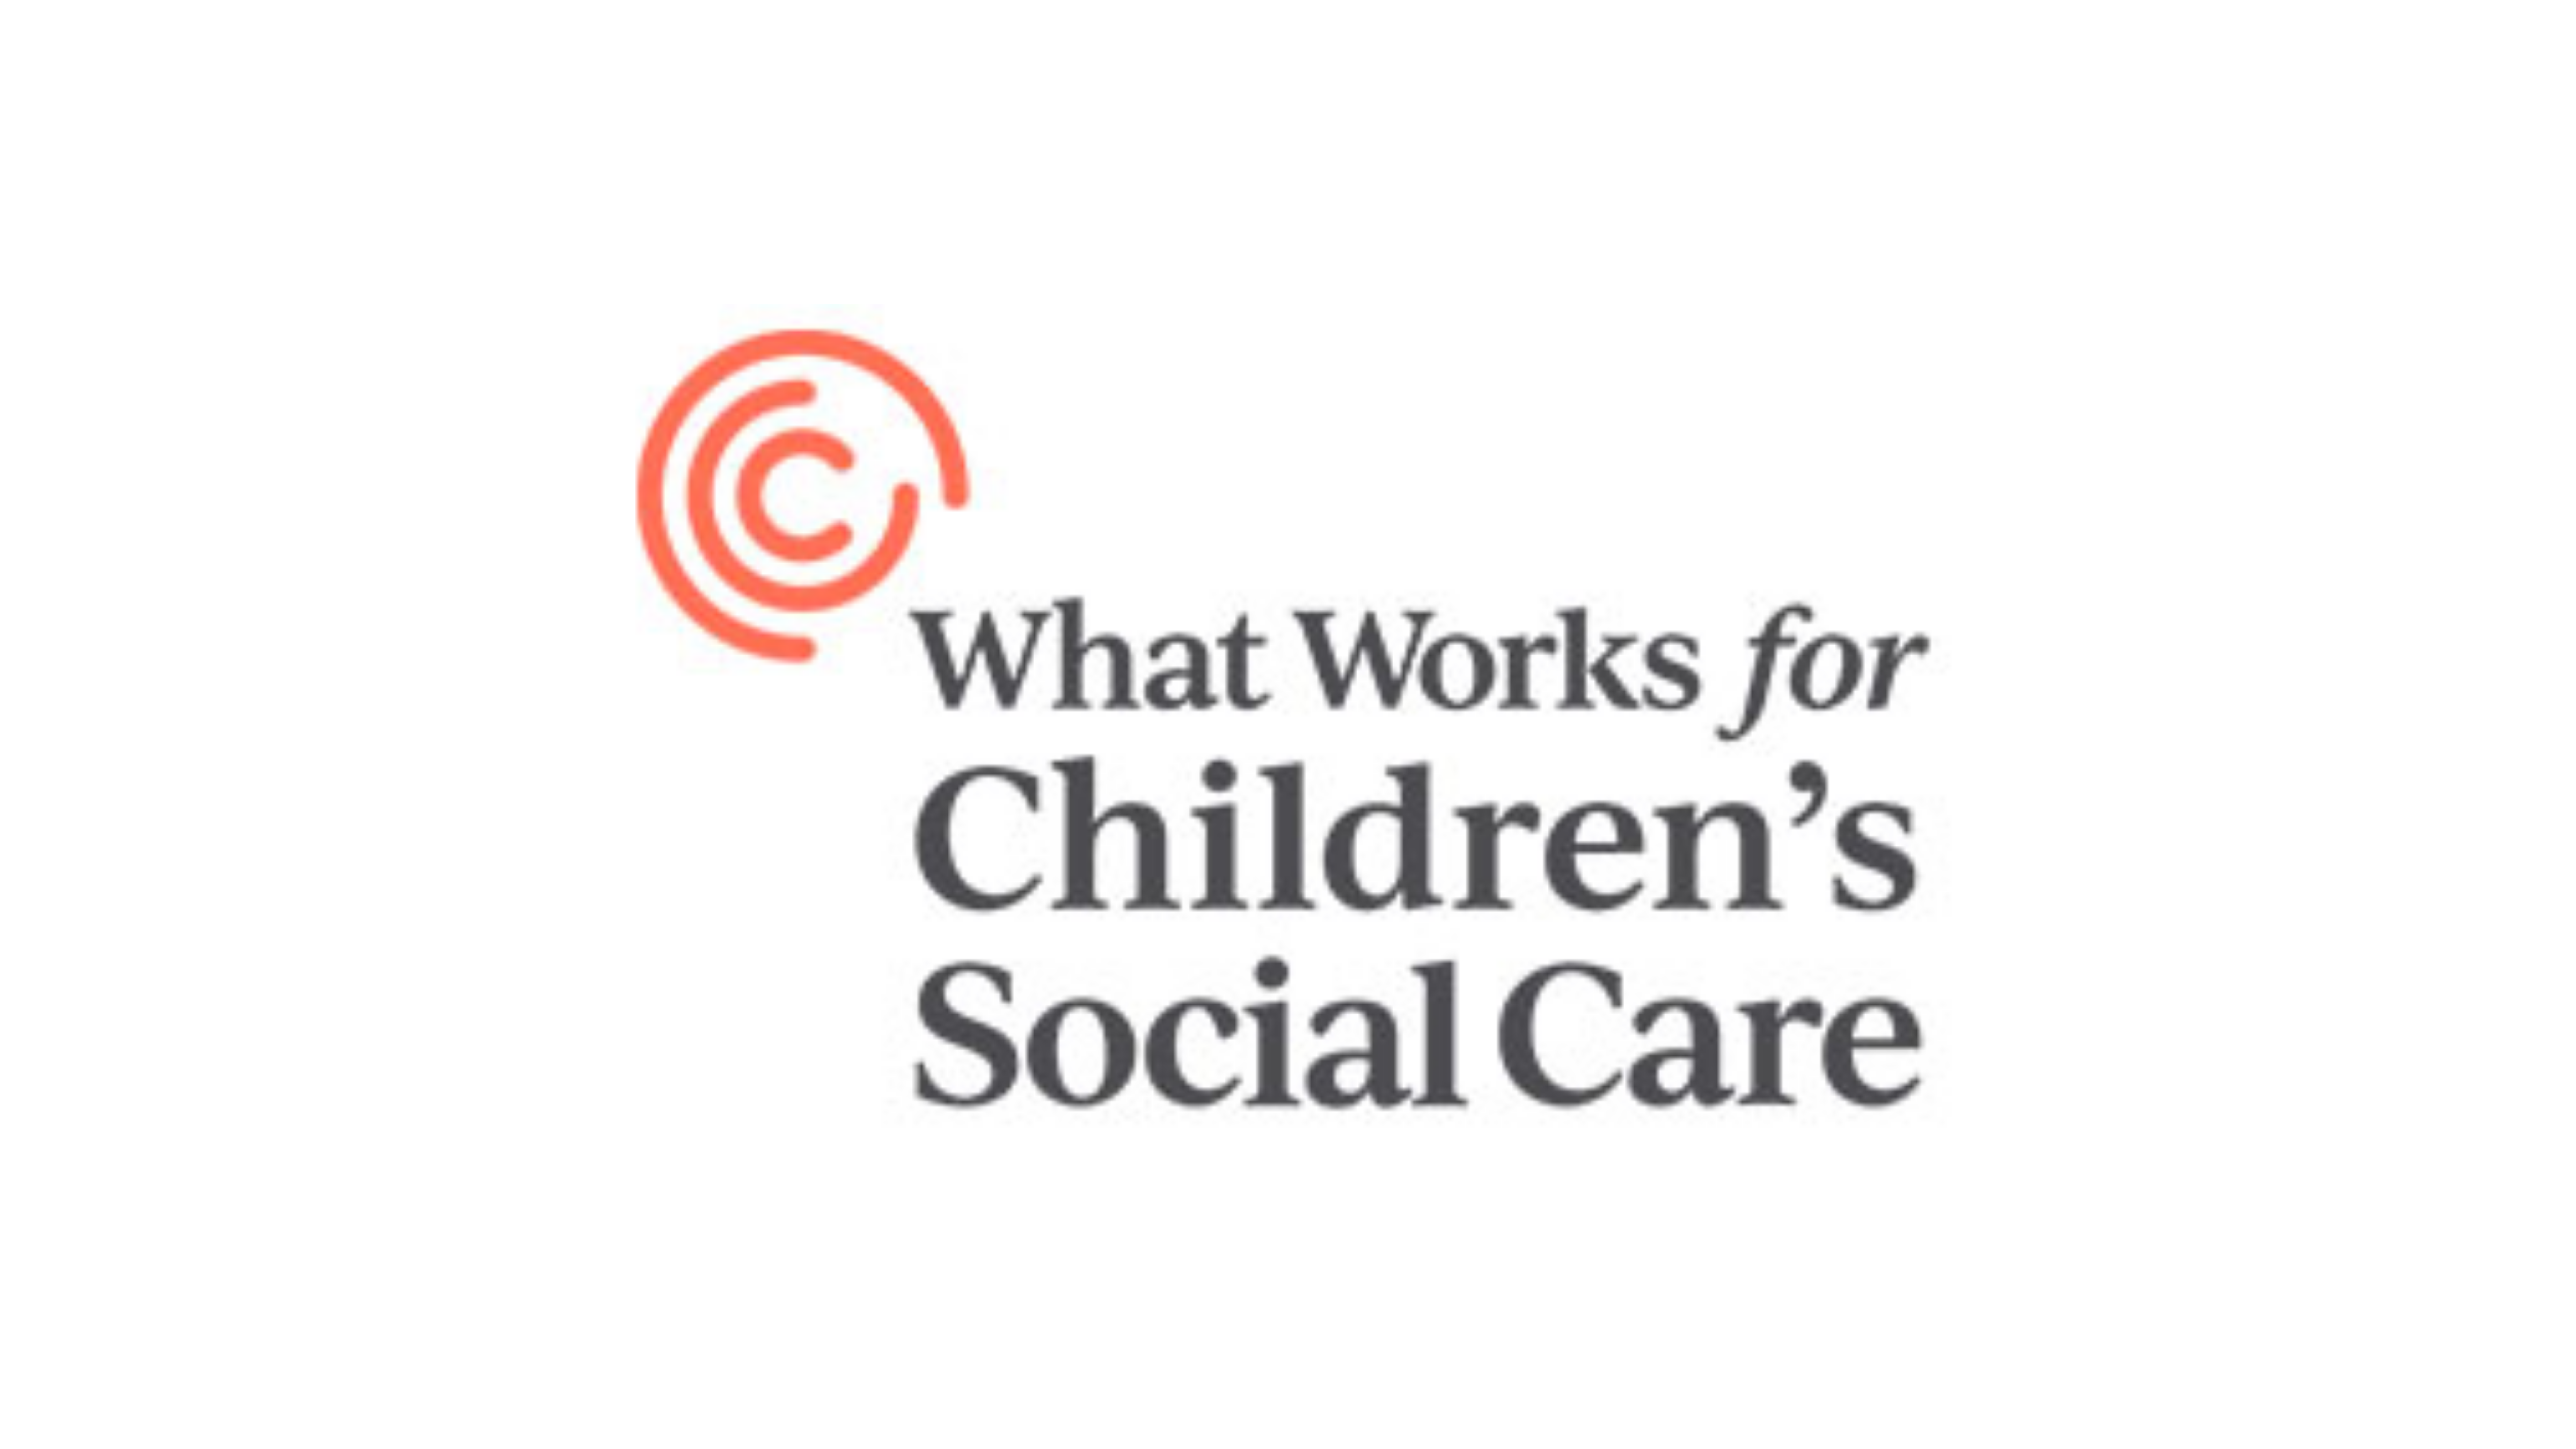 What works for children